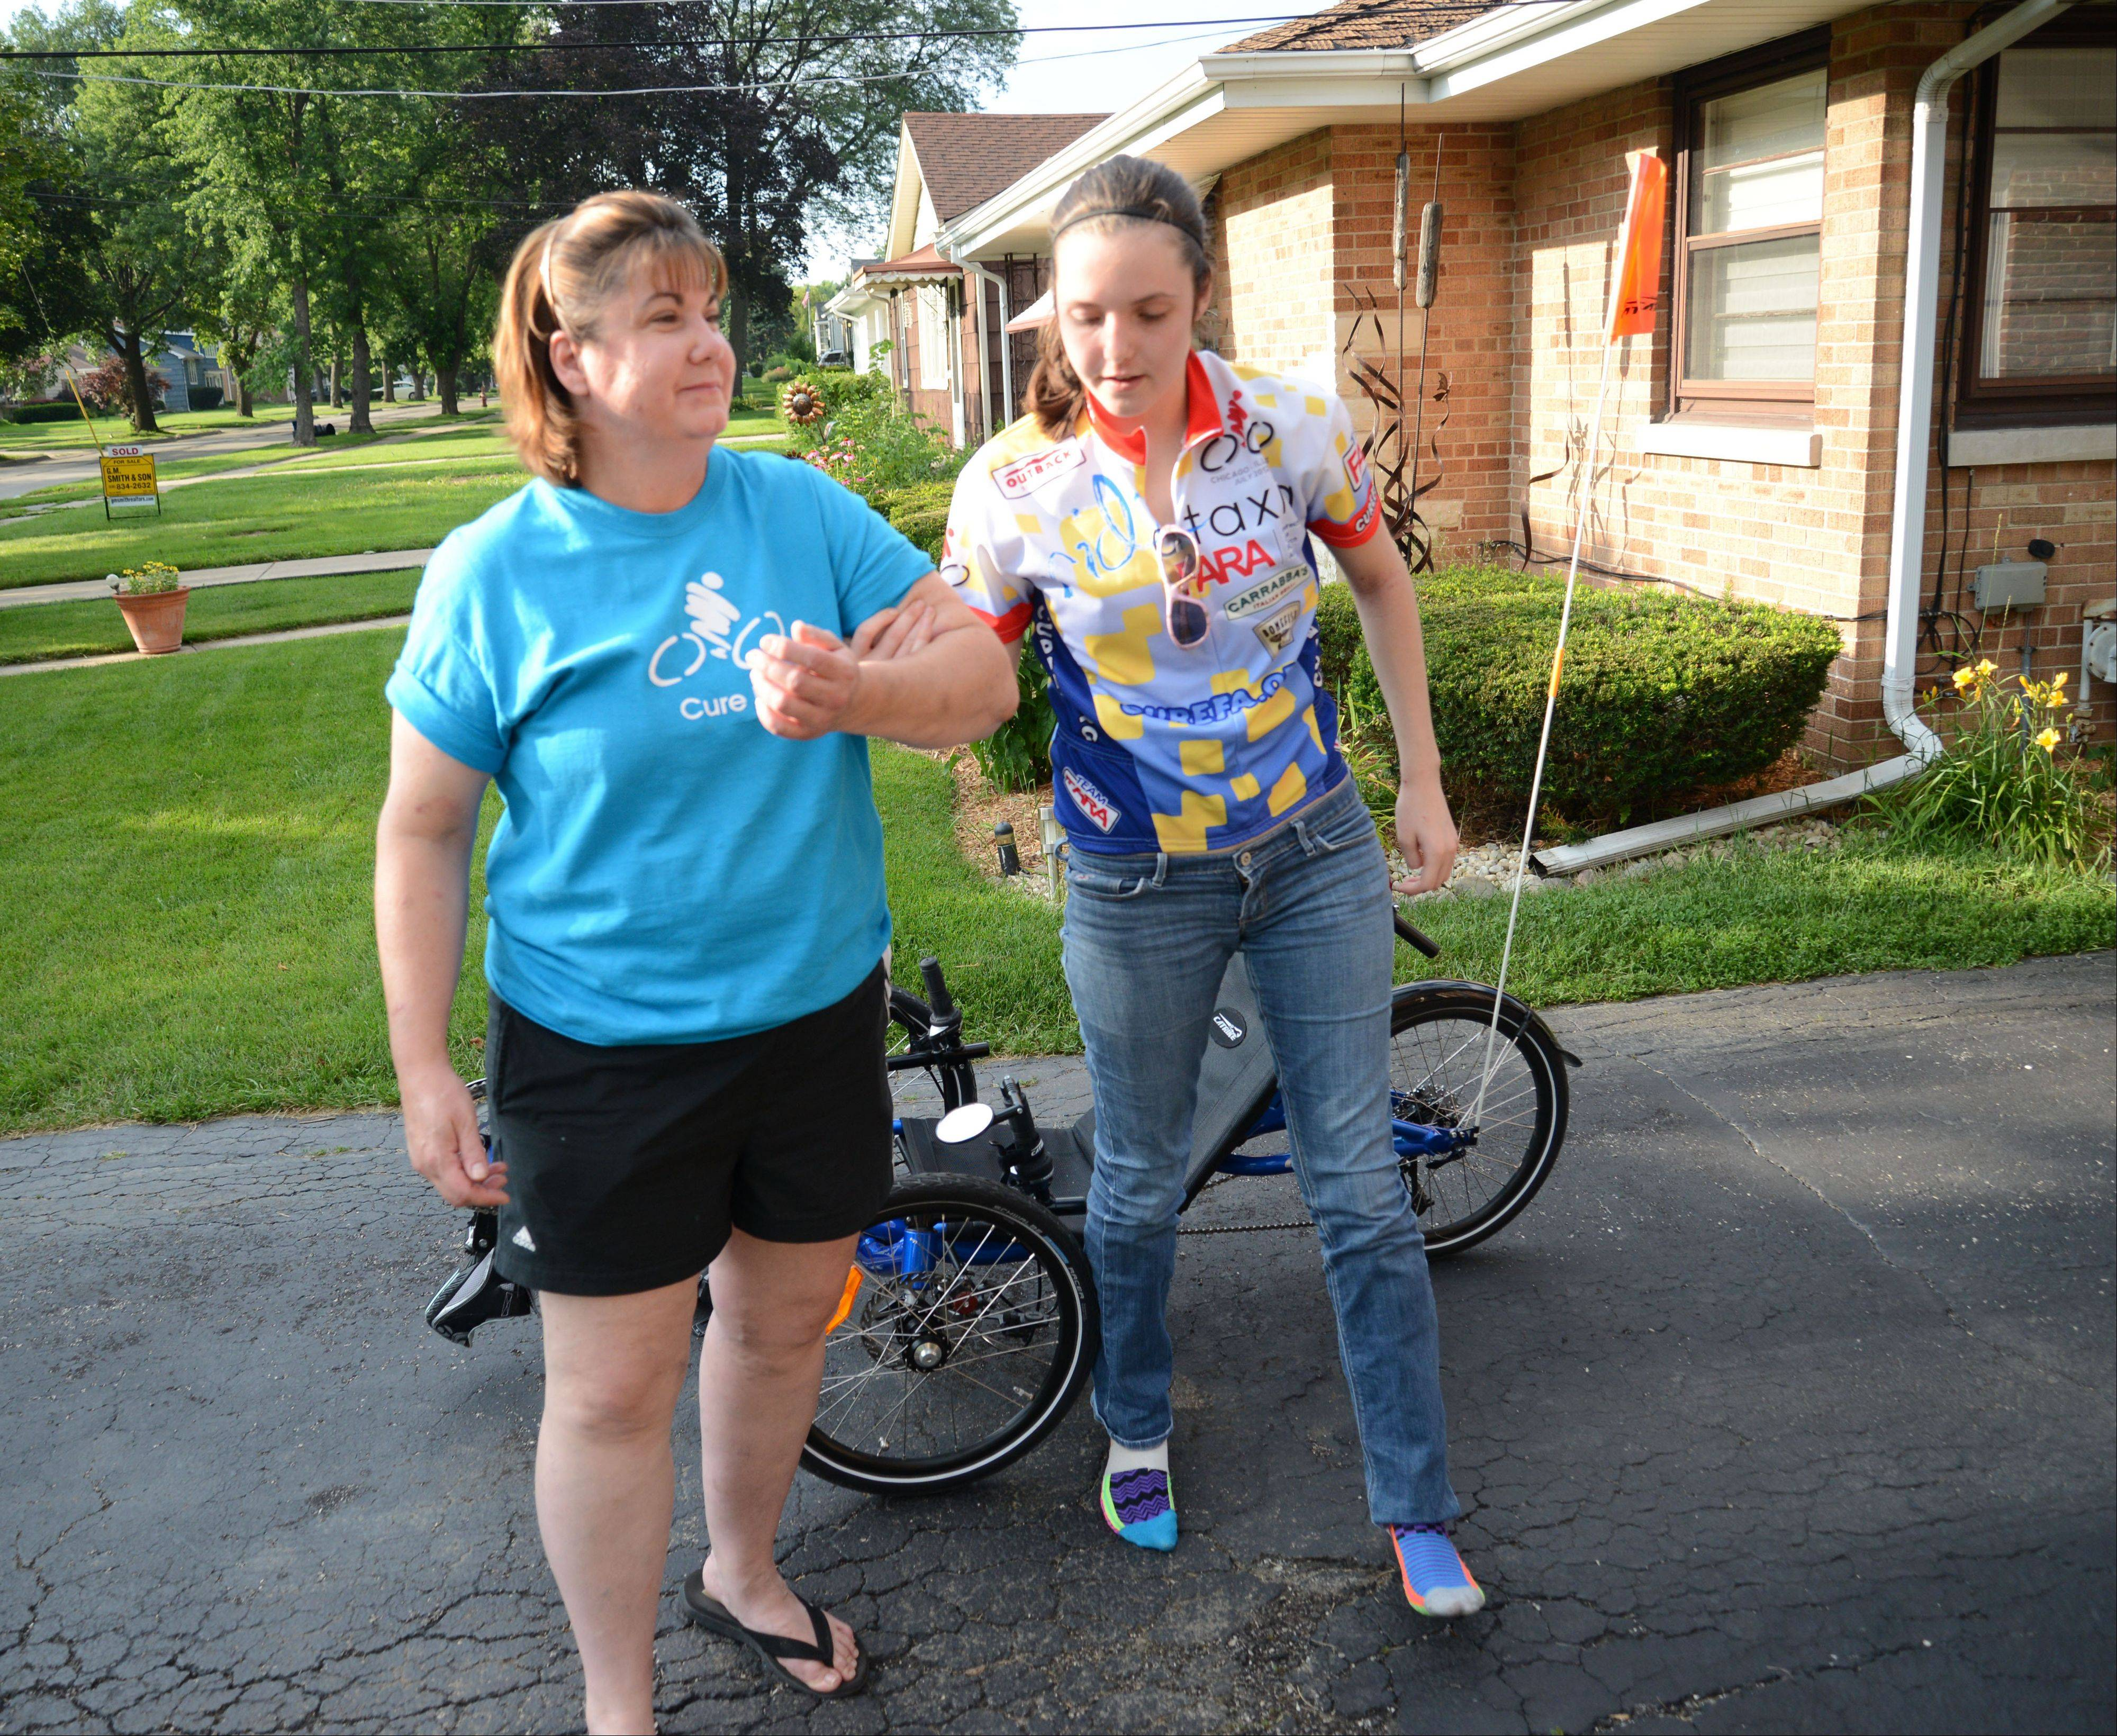 Always there to offer support when needed, Kelly Kramer helps her daughter, Nicole Kramer, back to their Villa Park home after the teen finishes a ride on her new custom cycle. The 19-year-old suffers from Friedreich's ataxia, an incurable neurological disorder.